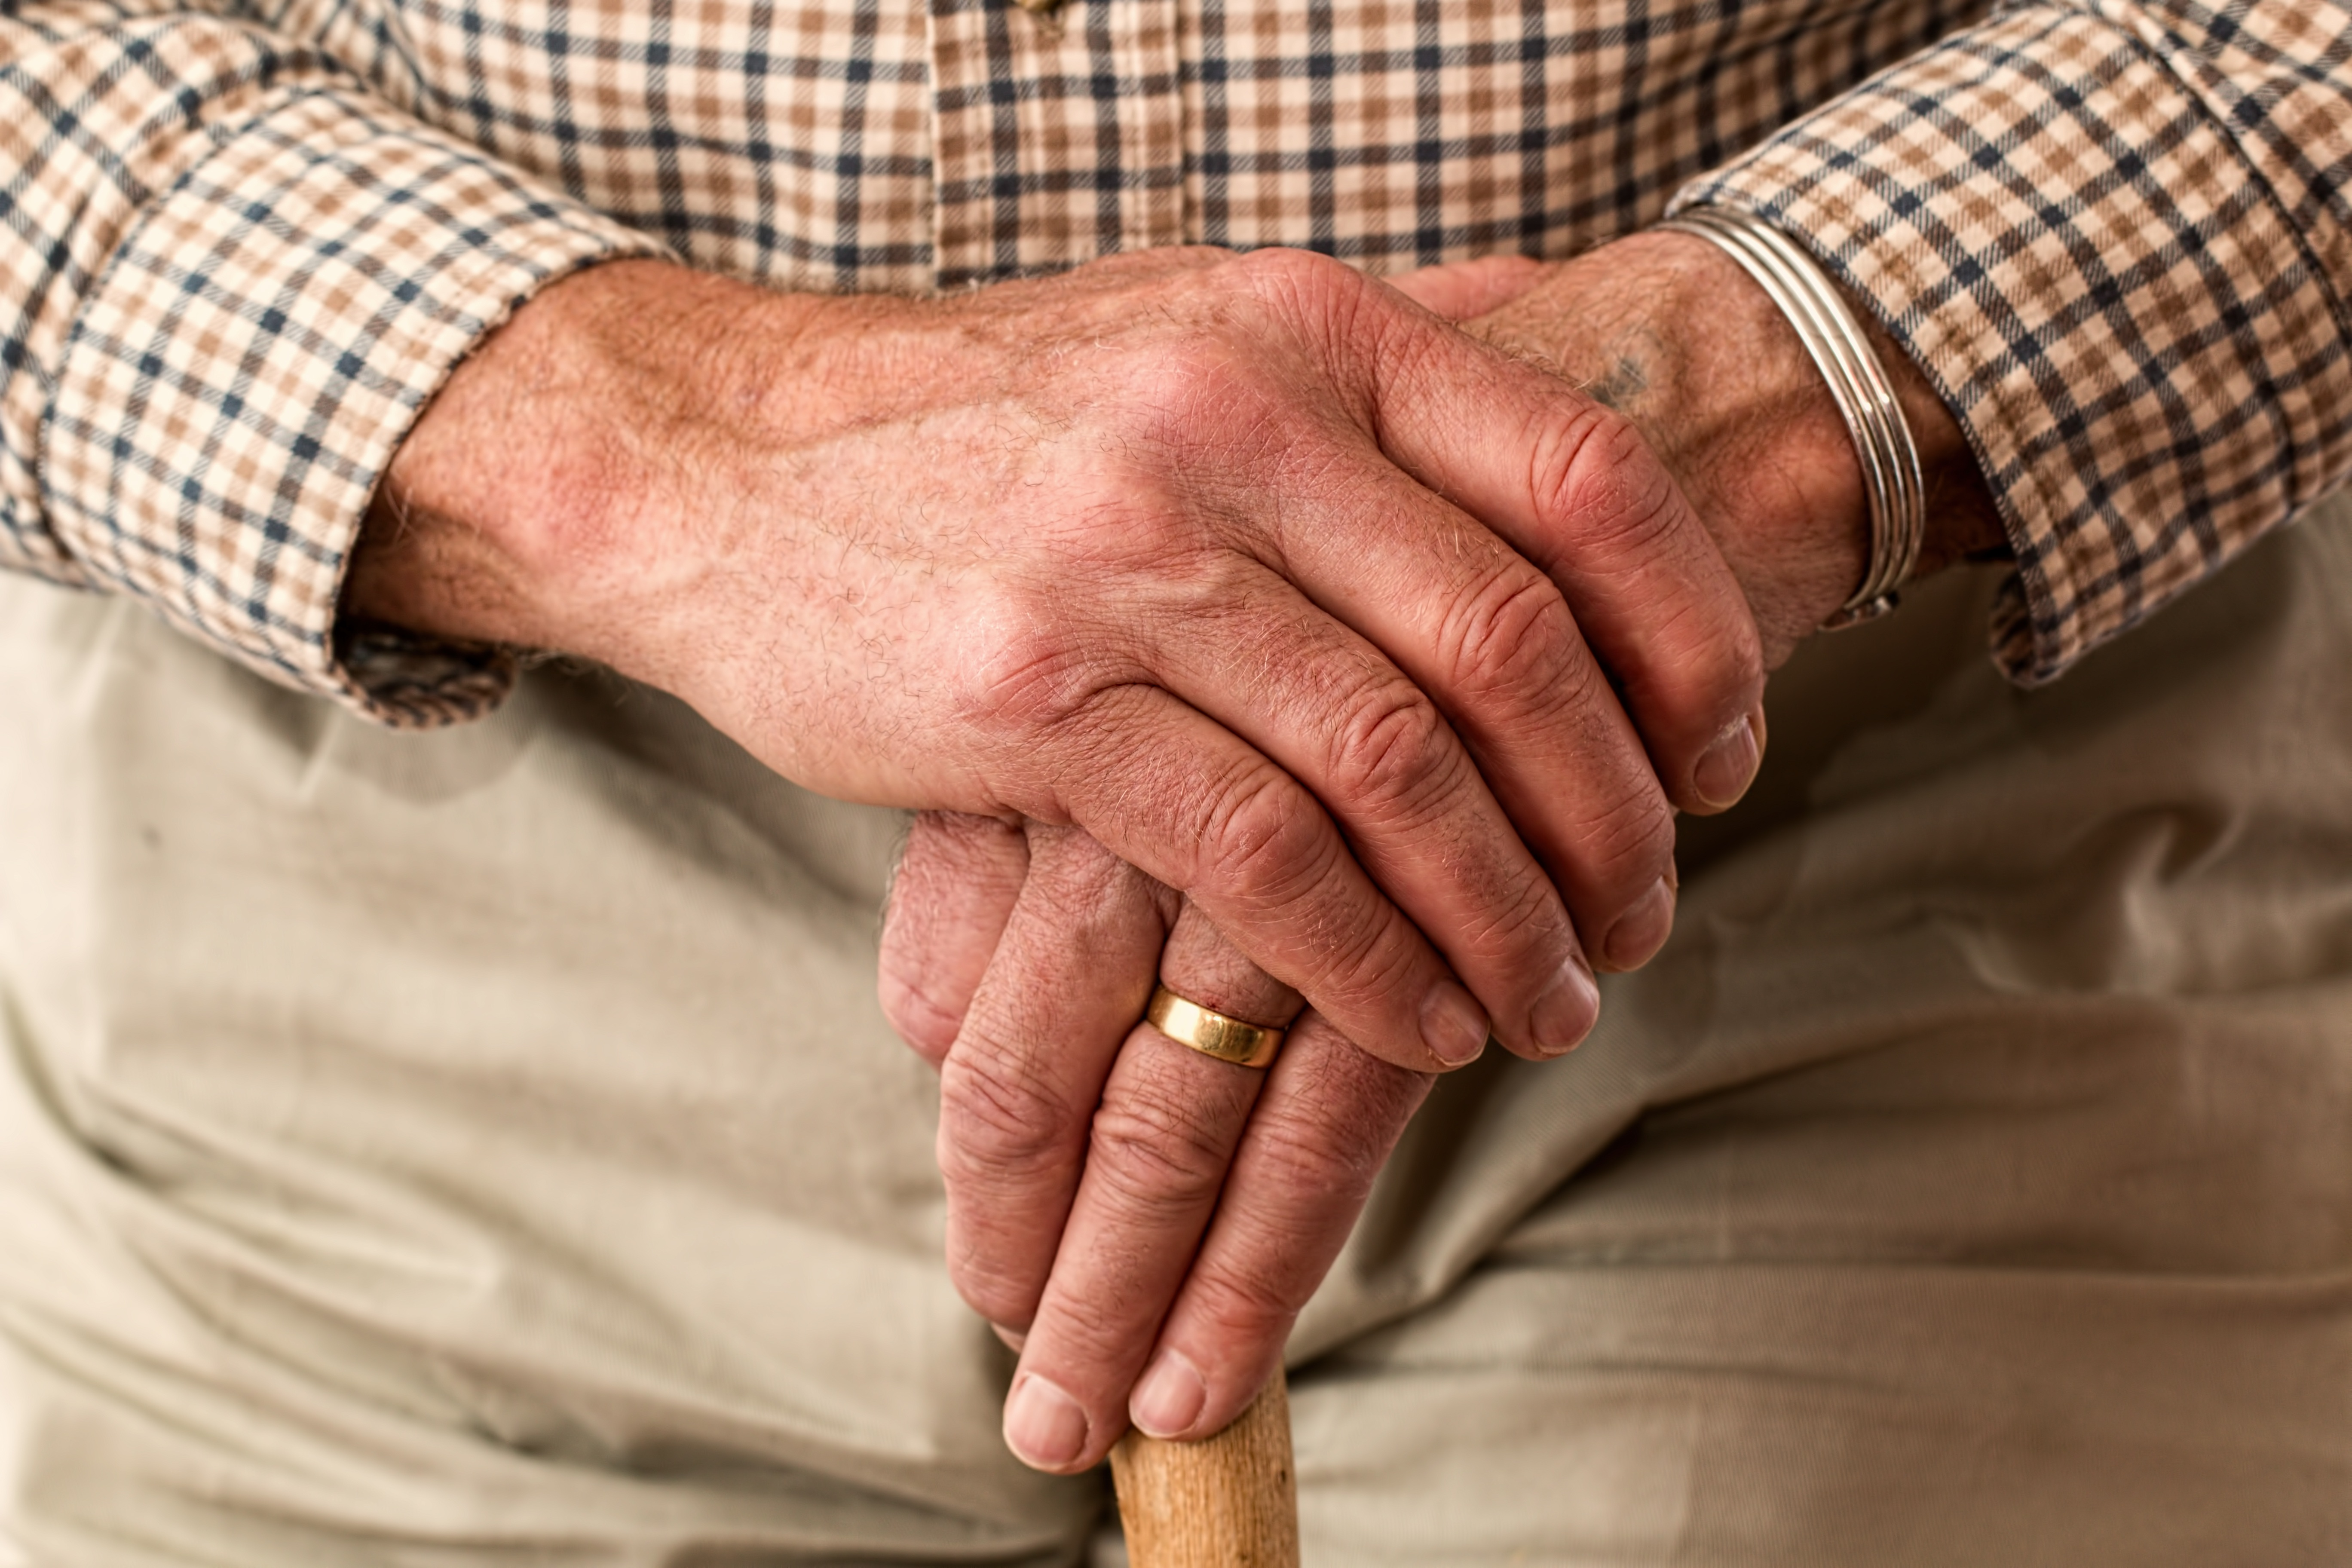 Those with arthritis may qualify for Social Security disability benefits. Learn how to qualify.